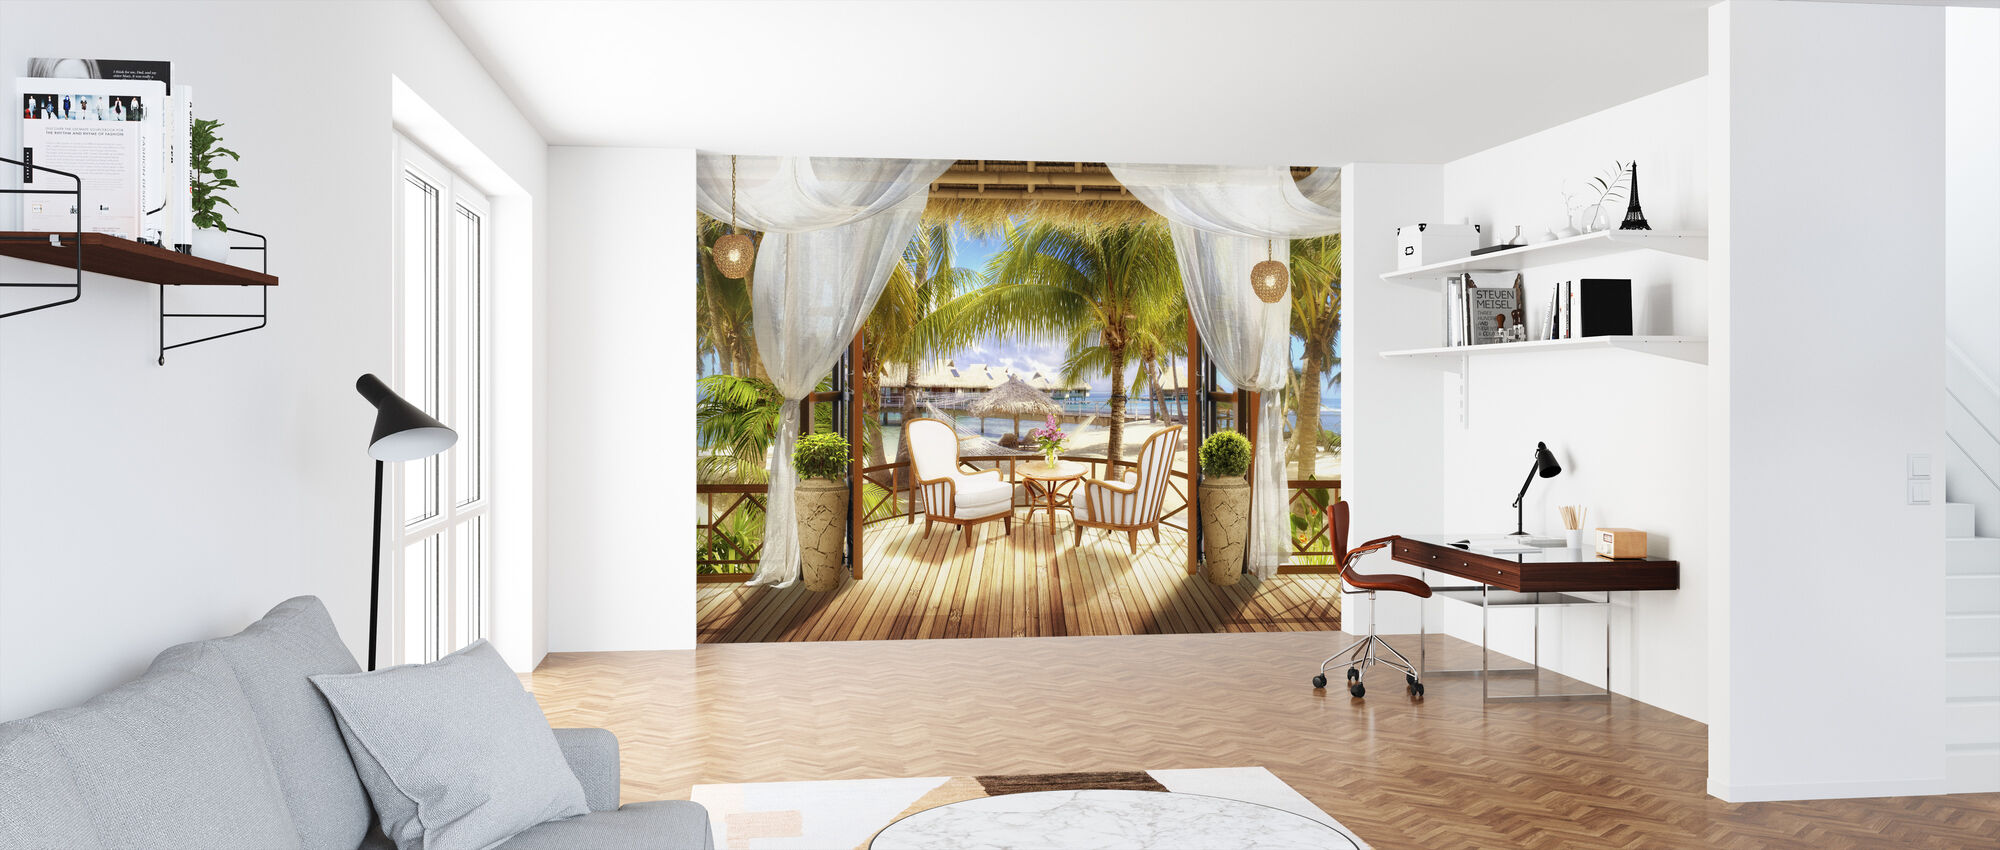 Bungalow in Paradise - Wallpaper - Office